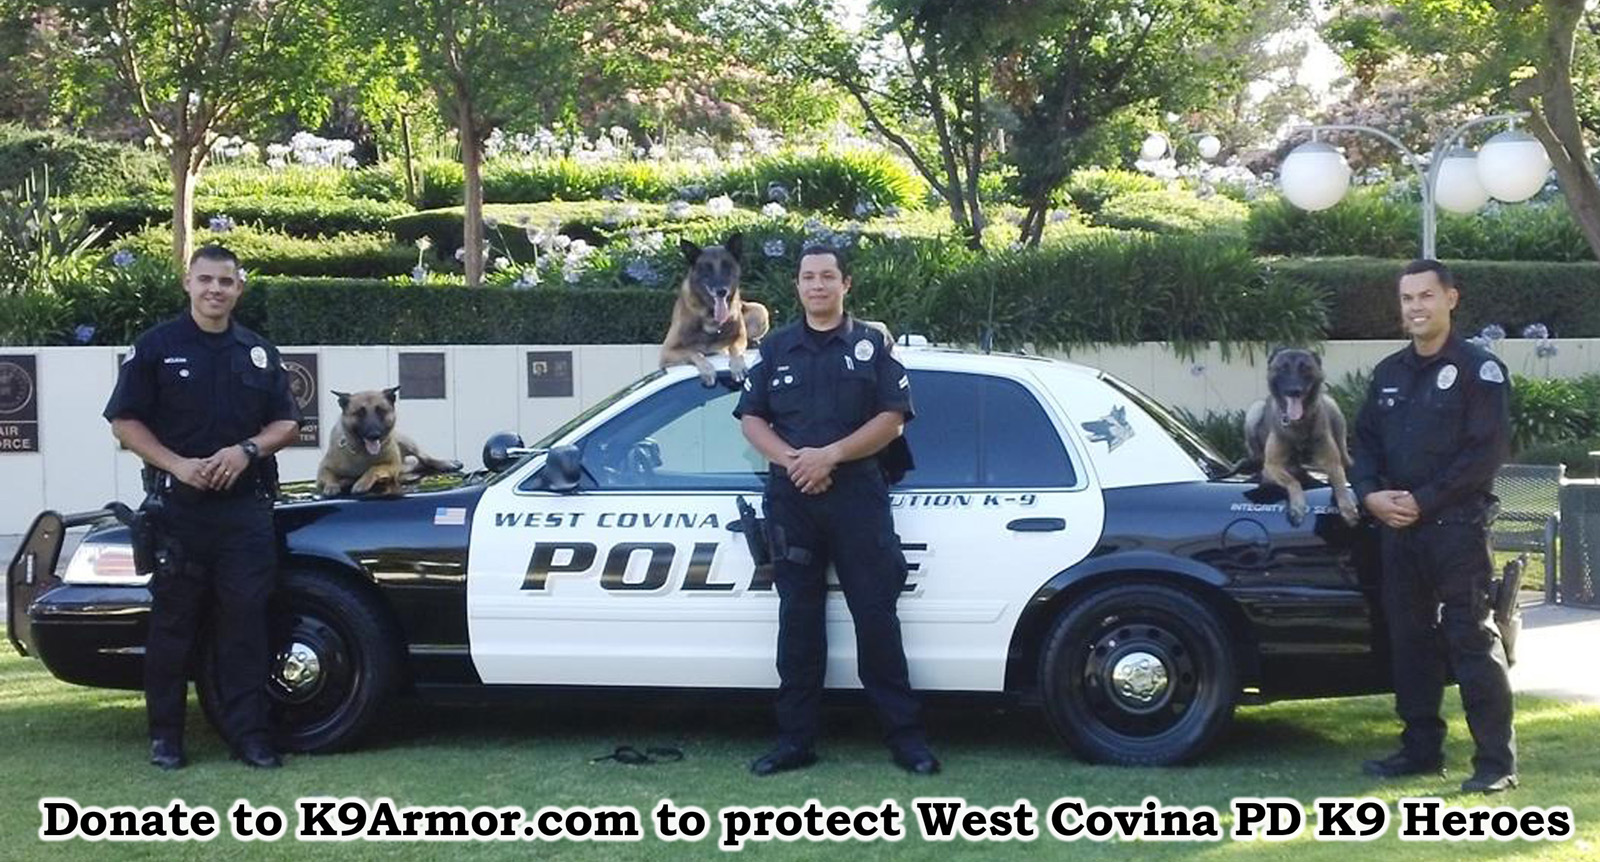 K9 Armor needs donations for 2 West Covina K9 Heroes Reiko and Rocco. We received a donation for Robbie.